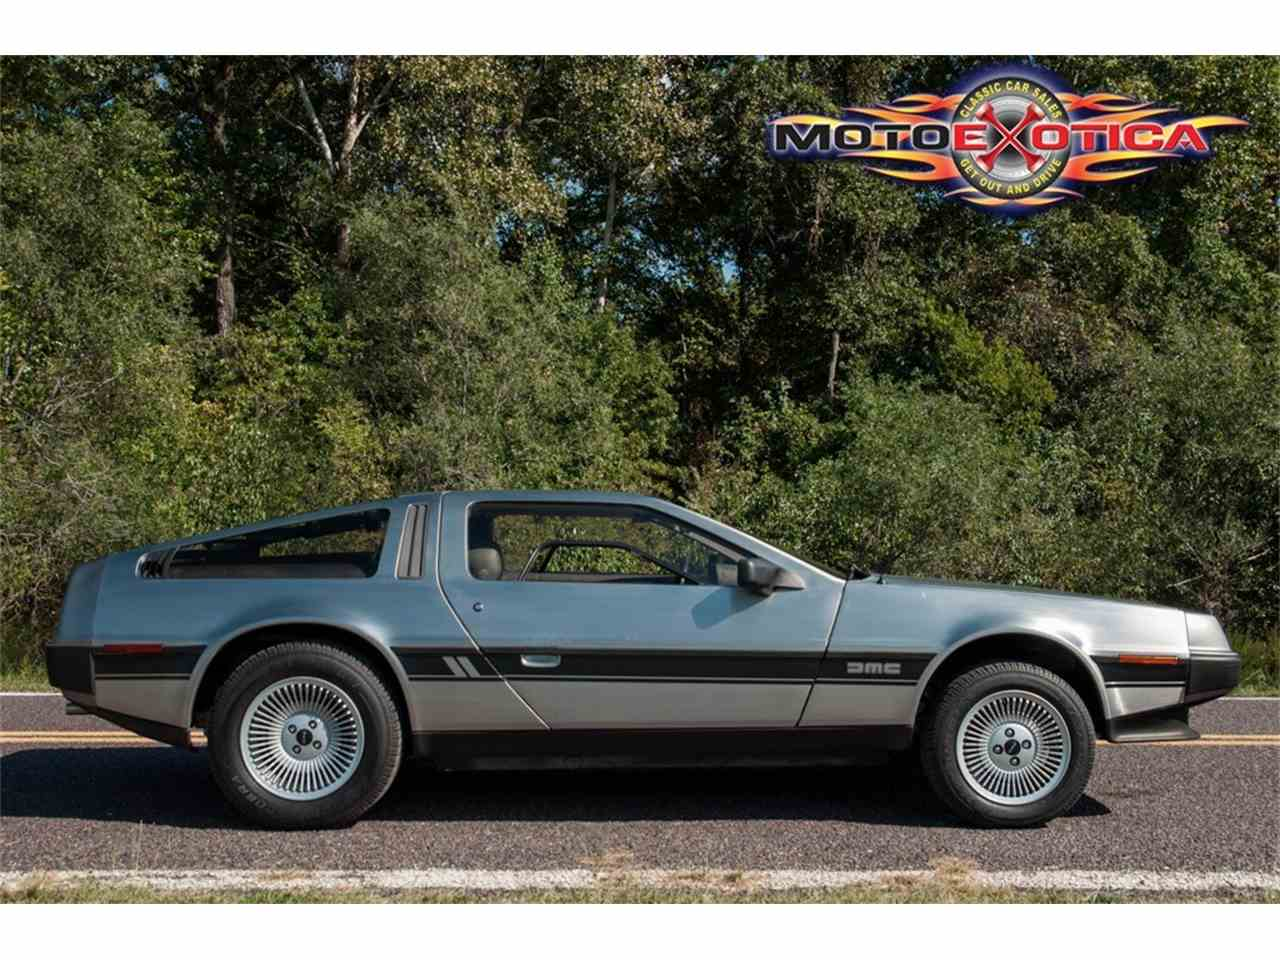 Large Picture of '81 DeLorean DMC-12 located in Missouri - $73,500.00 Offered by MotoeXotica Classic Cars - JPXR